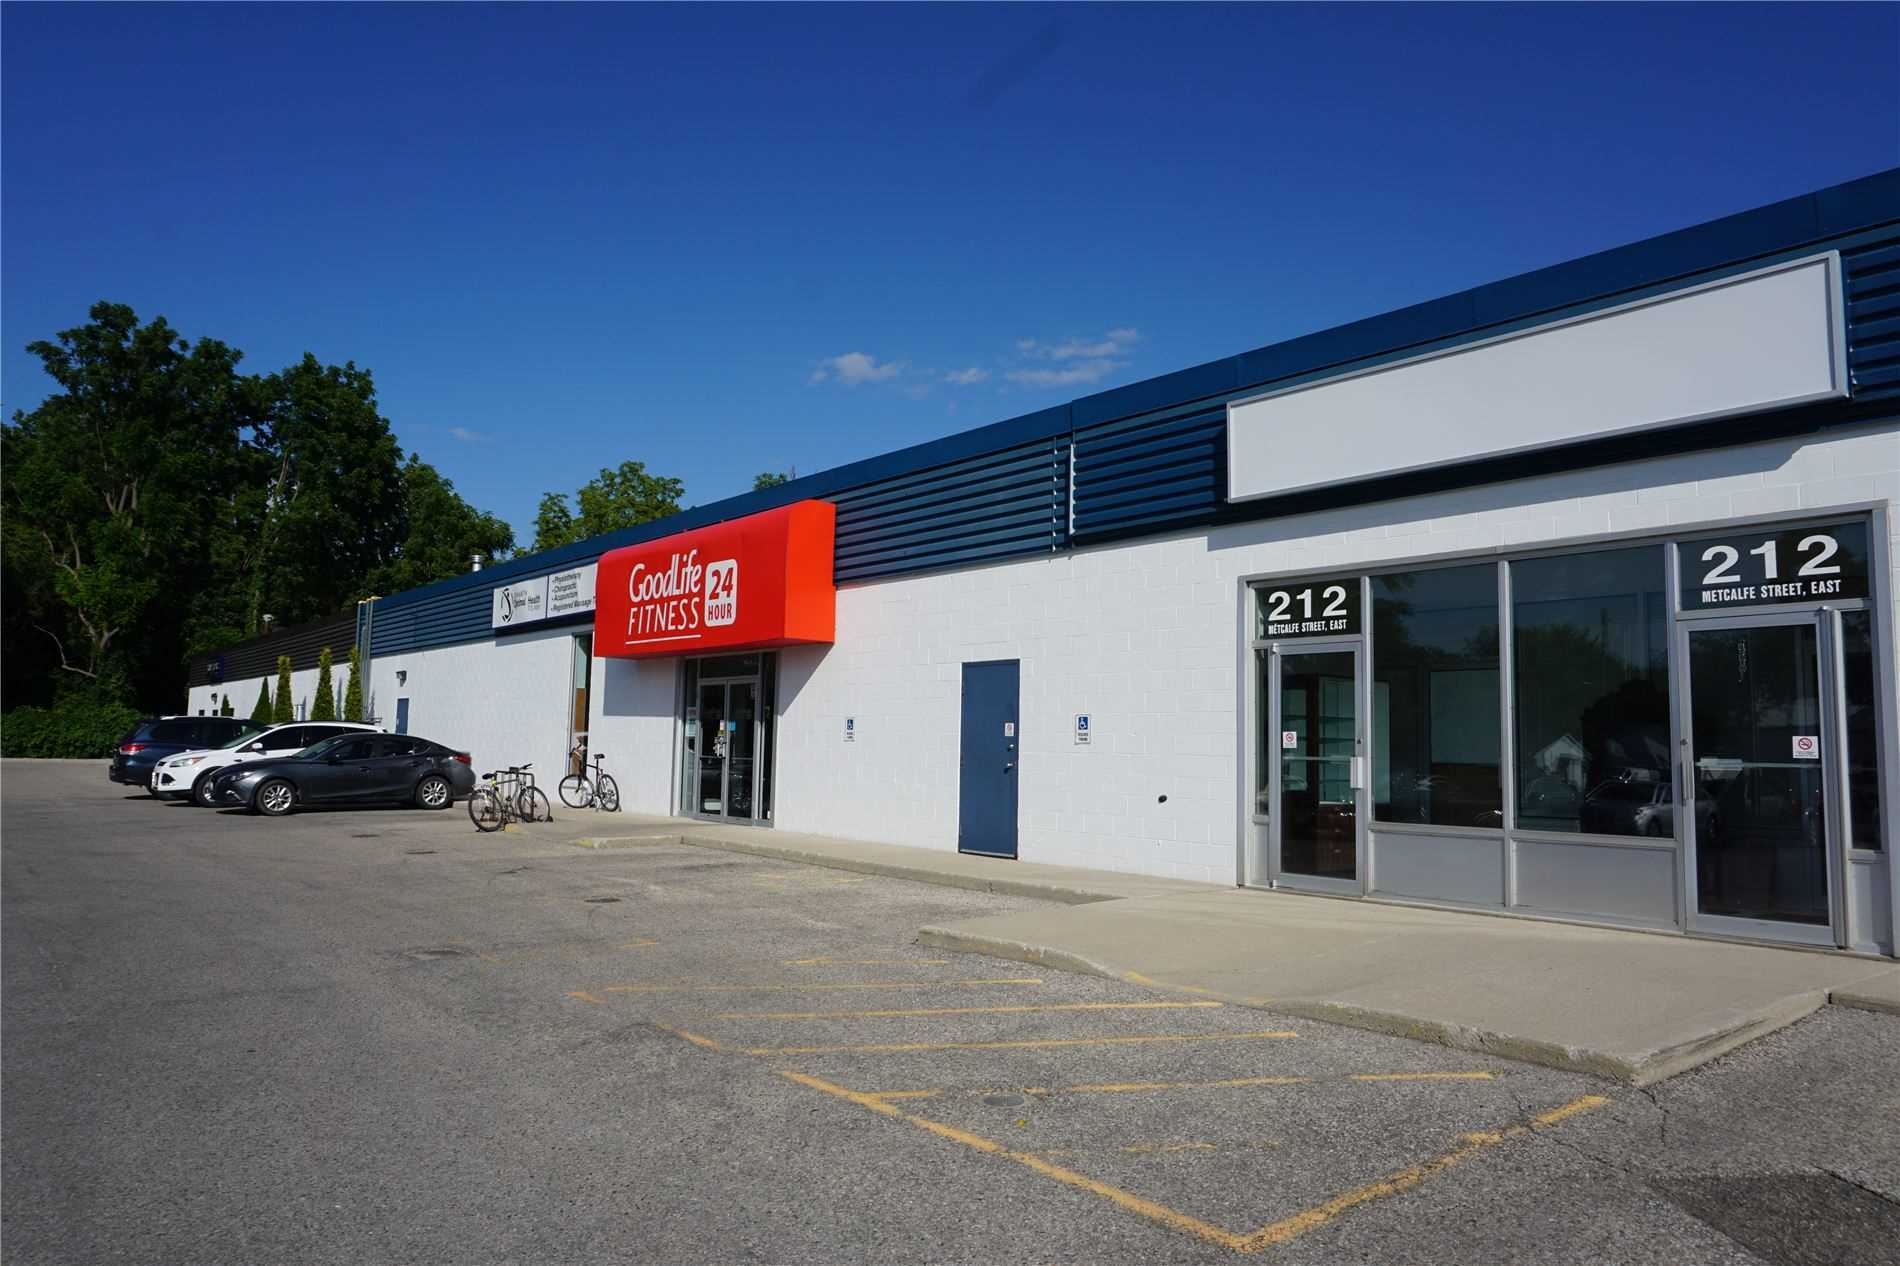 45 Zimmerman Ave, Southwest Middlesex, Ontario 0A3, ,8 BathroomsBathrooms,Commercial/Retail,For Sale,Zimmerman,X4778795